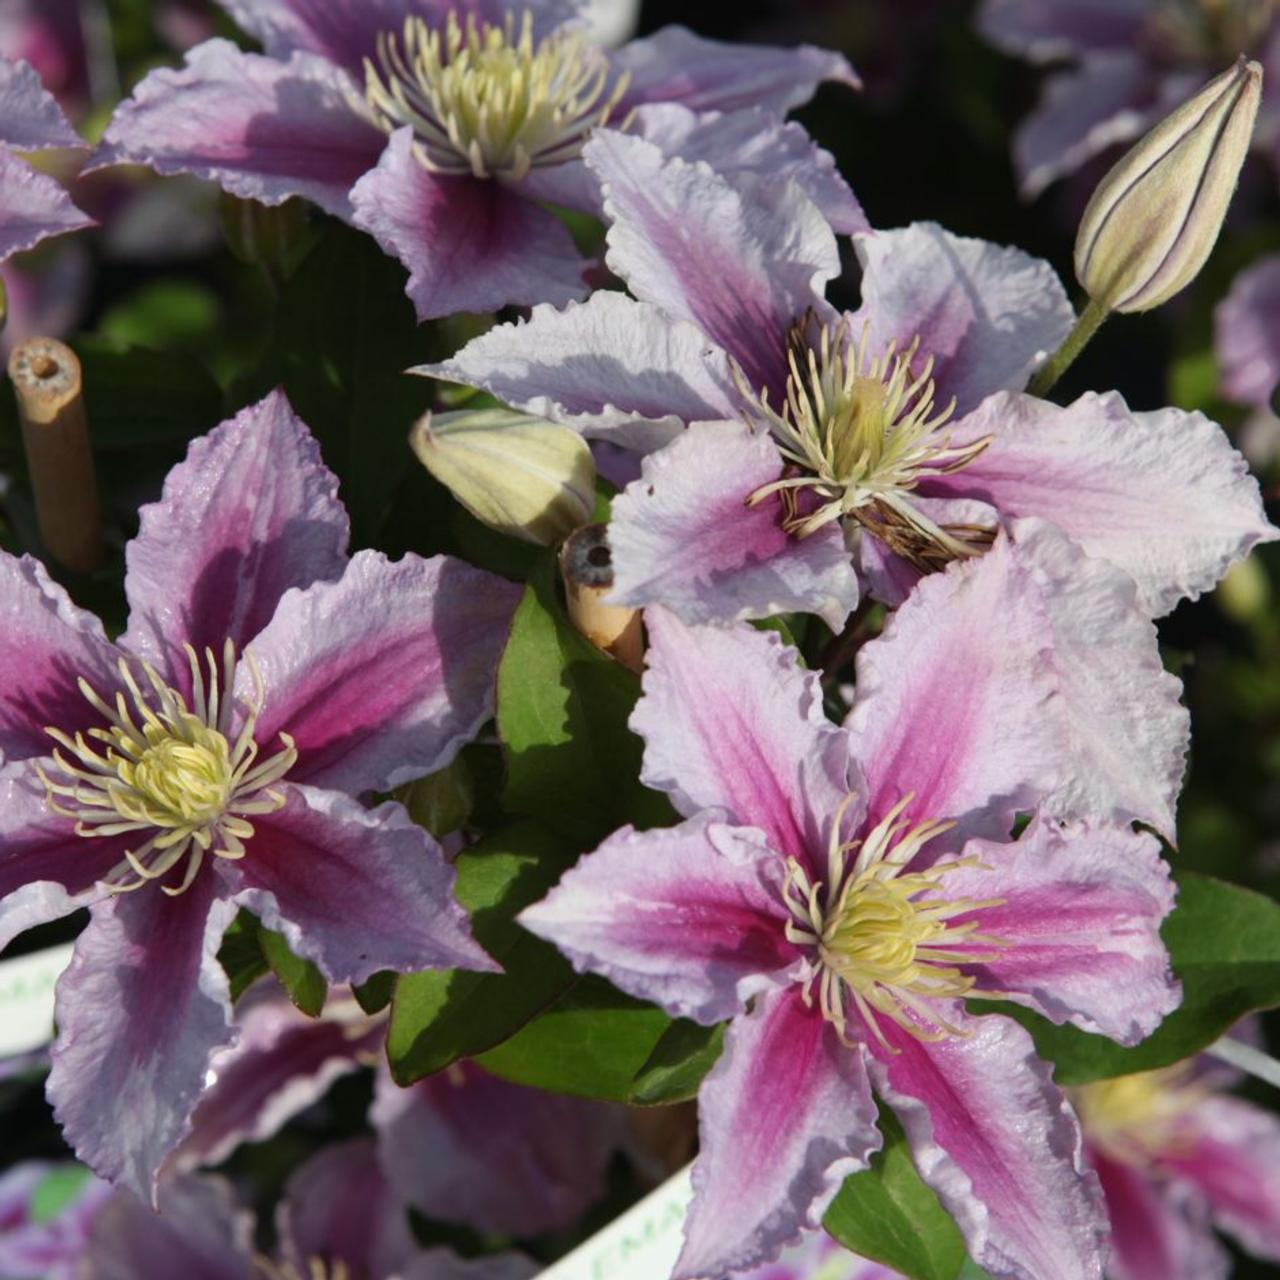 Clematis 'Piilu' plant